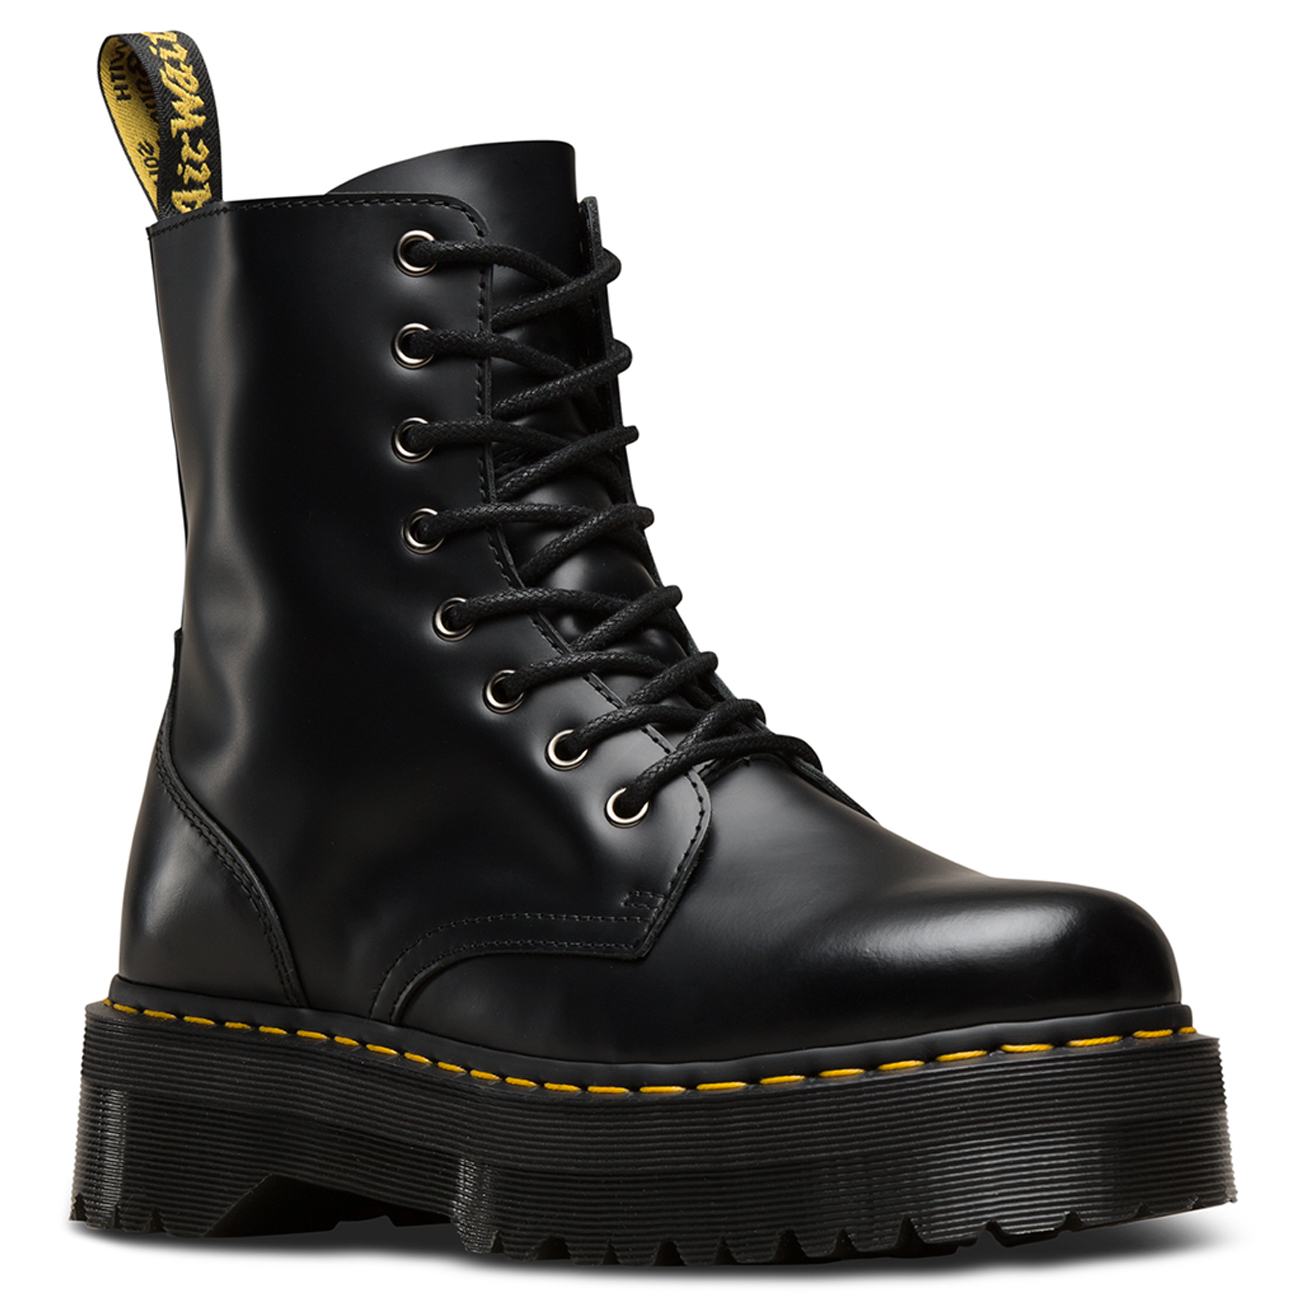 66dcfe5805b Unisex Adults Dr Martens Jadon Black Chunky Smooth Polished Leather Boot US  5-14